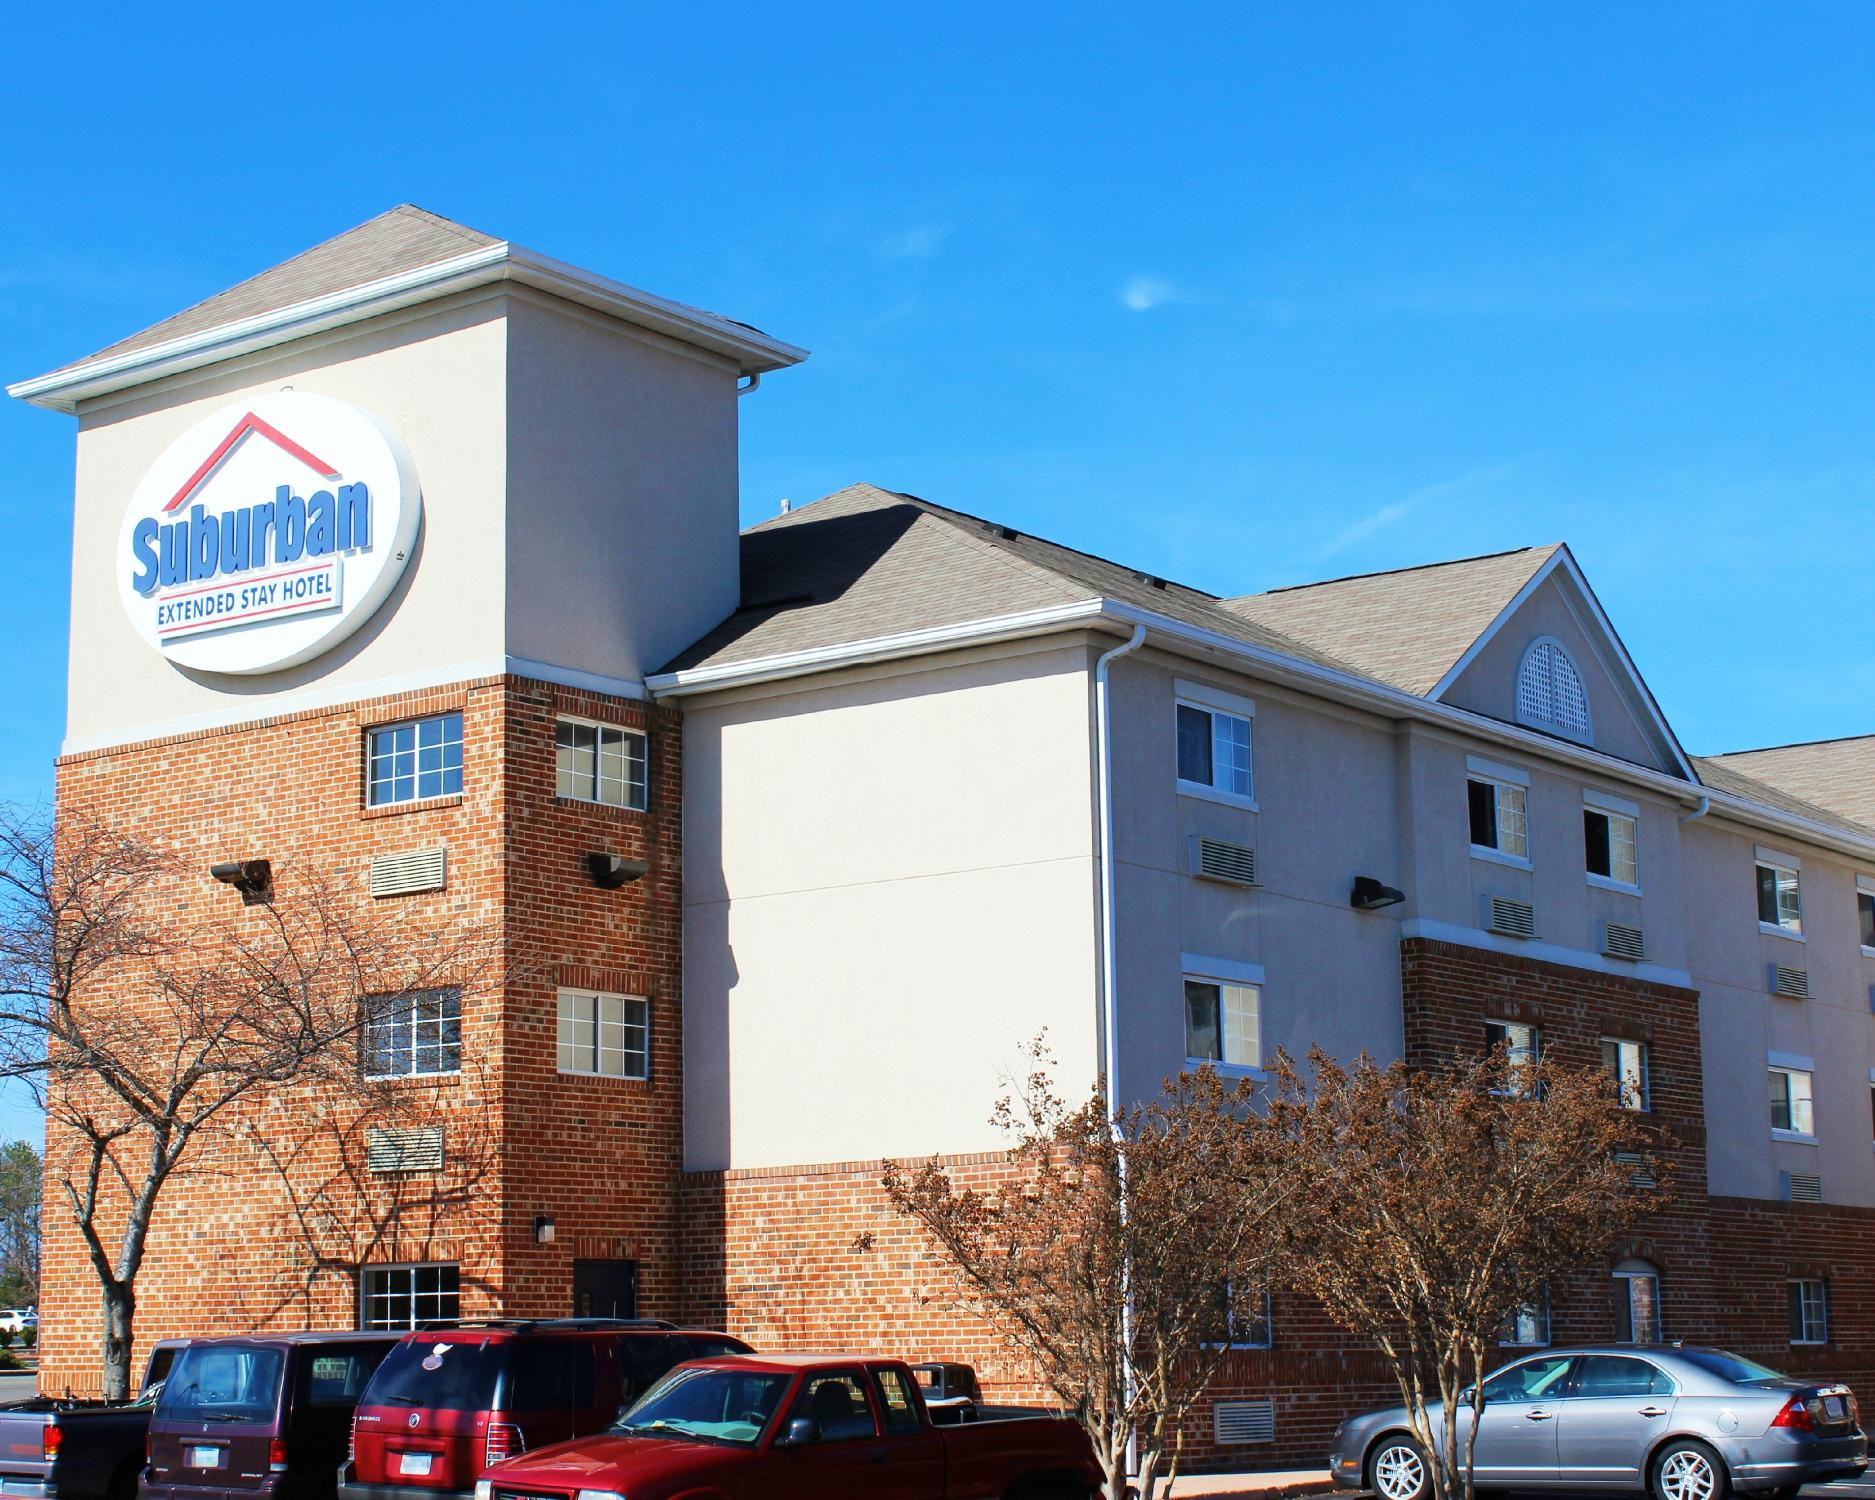 Suburban Extended Stay Hotel - Richmond